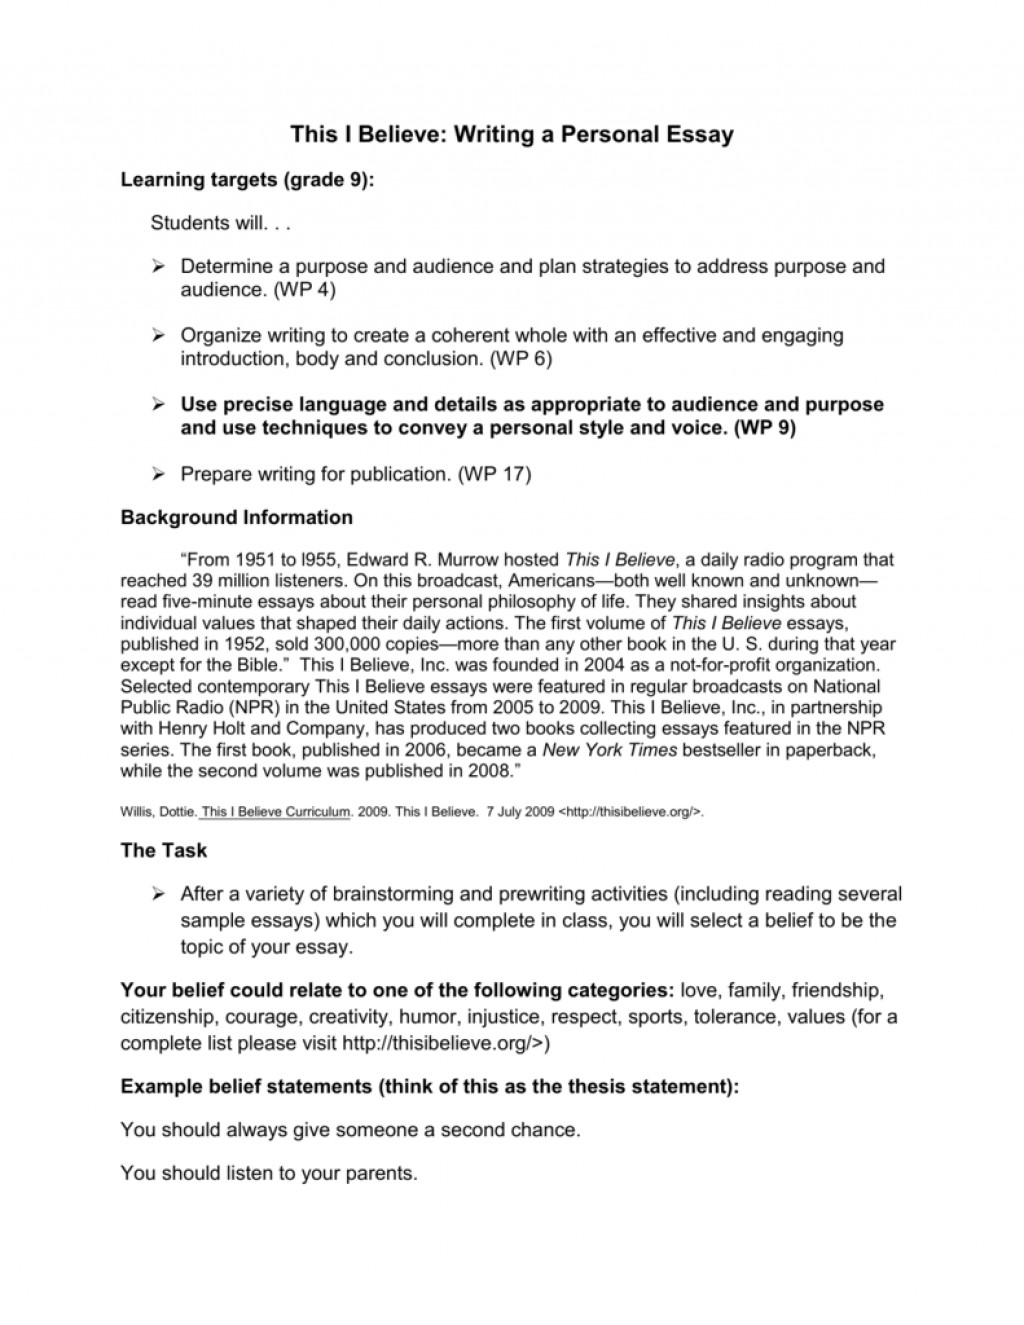 002 006750112 1 This I Believe Essay Singular Essays Npr Examples Middle School Assignment Large